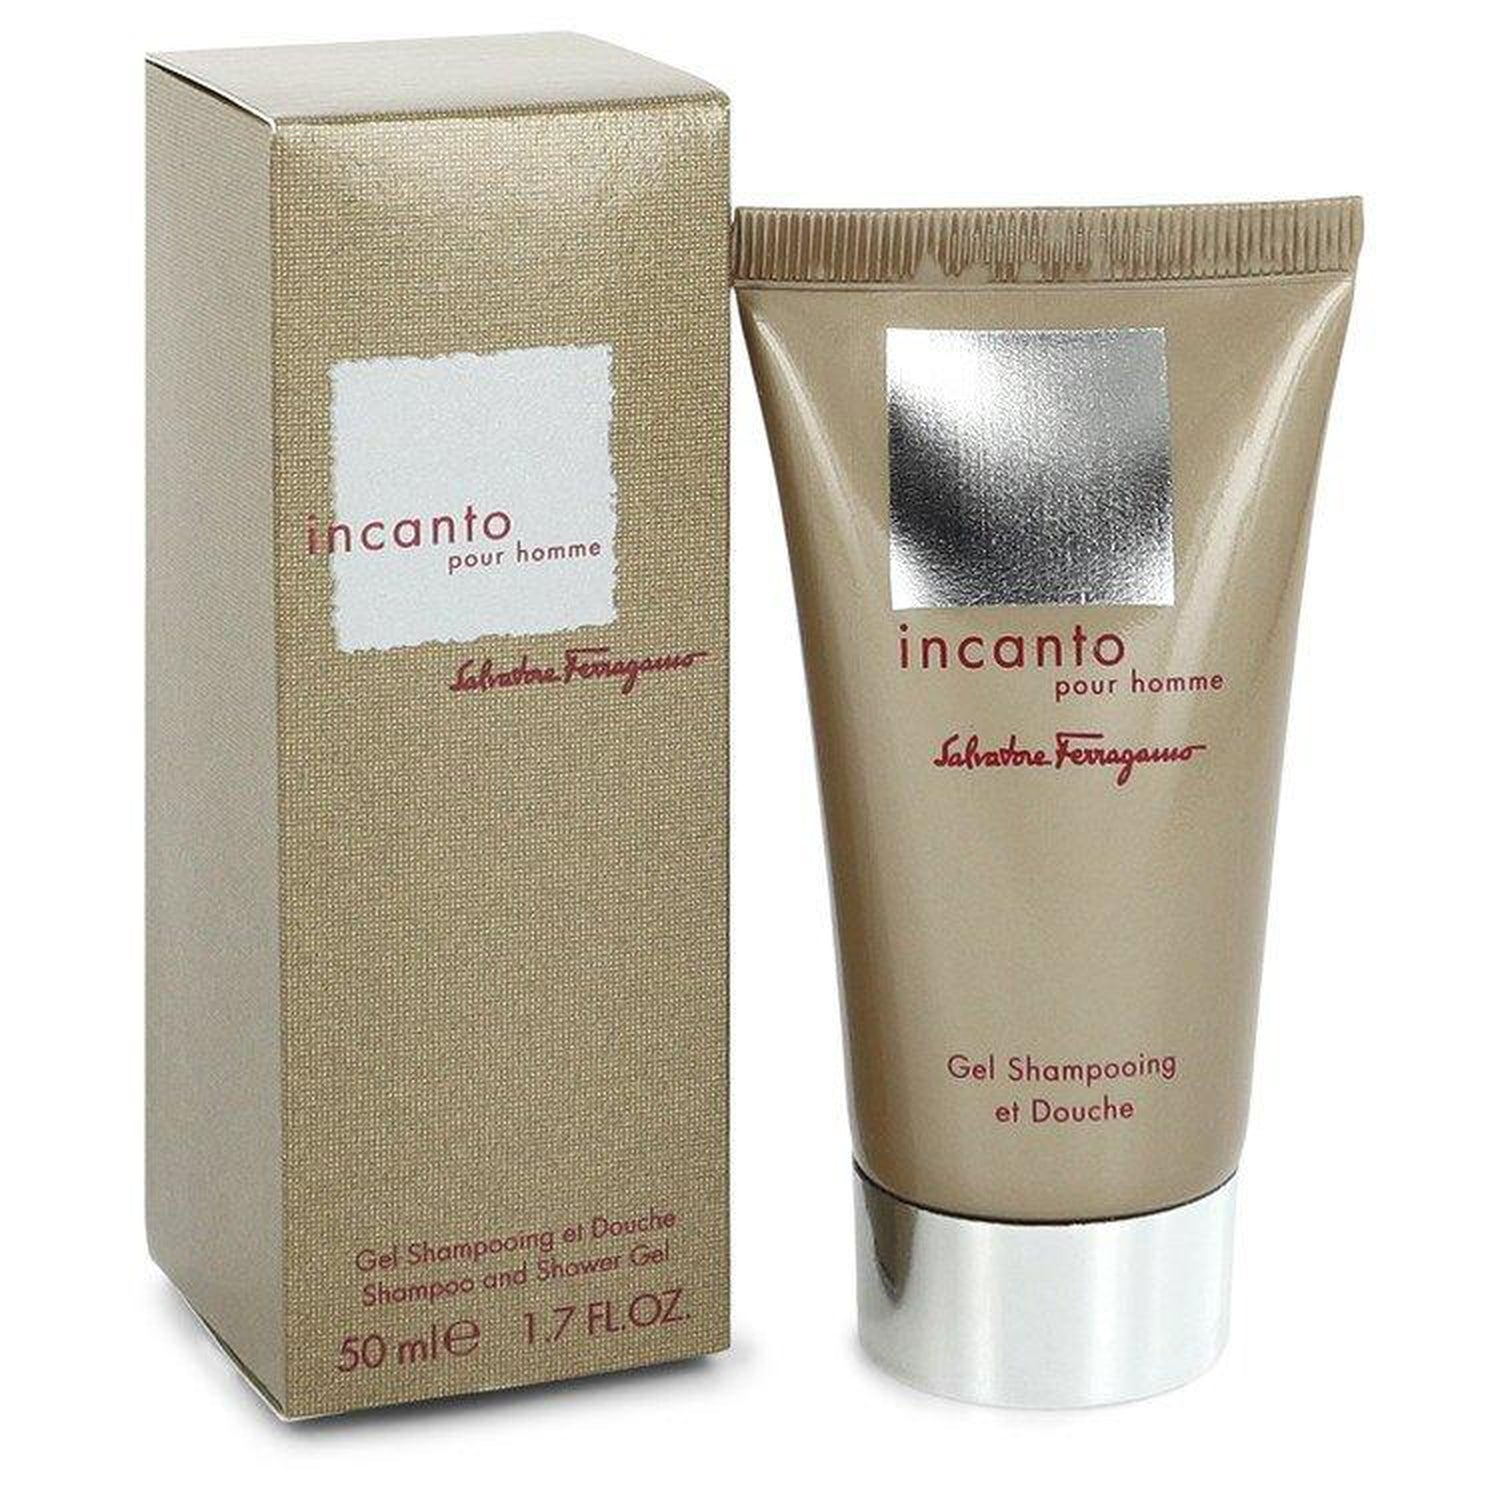 Incanto Shower Gel By Salvatore Ferragamo 1.7 oz Shower Gel